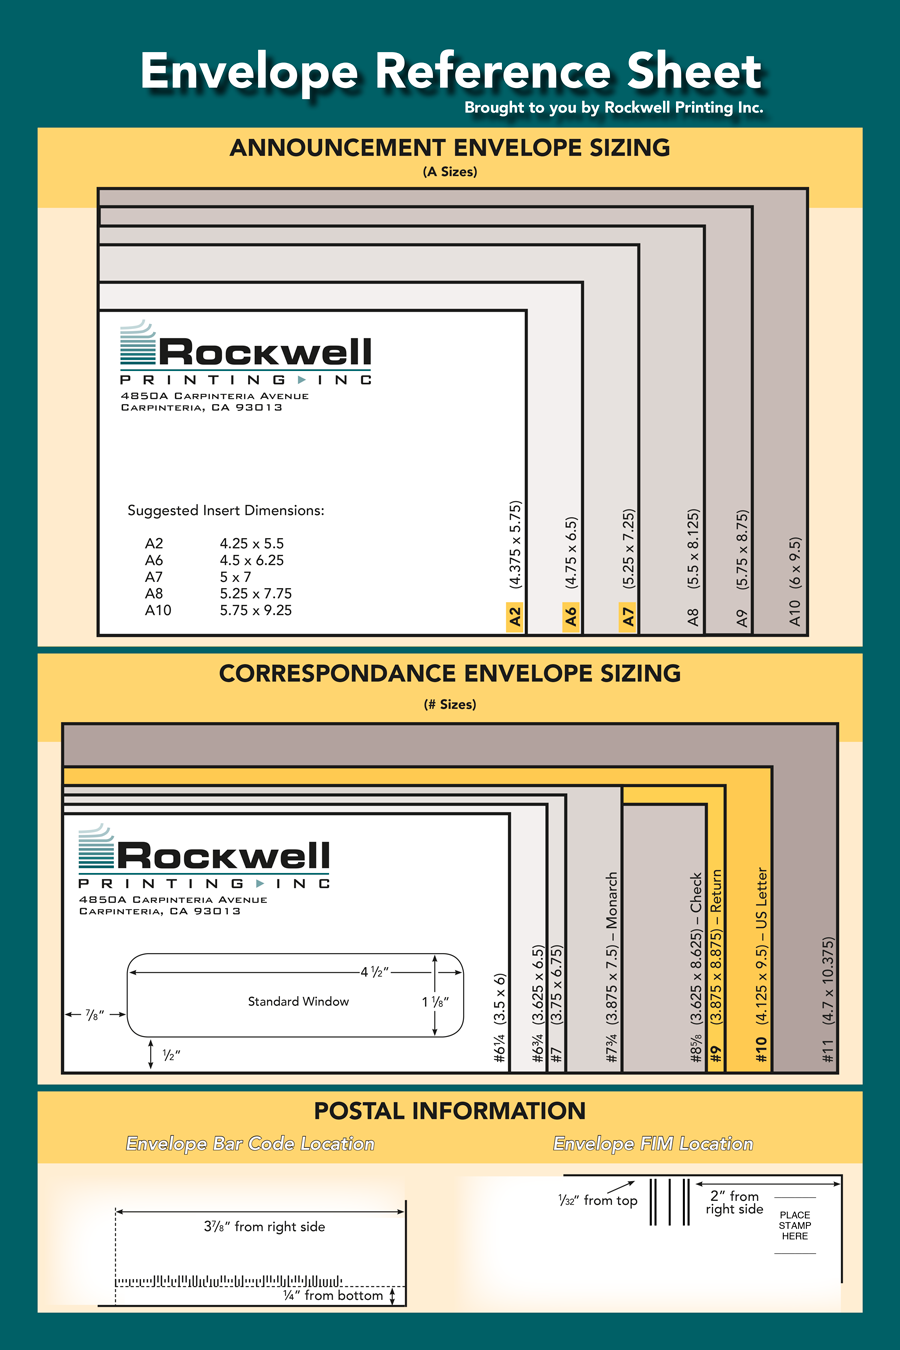 Envelope Reference Chart - Rockwell Printing